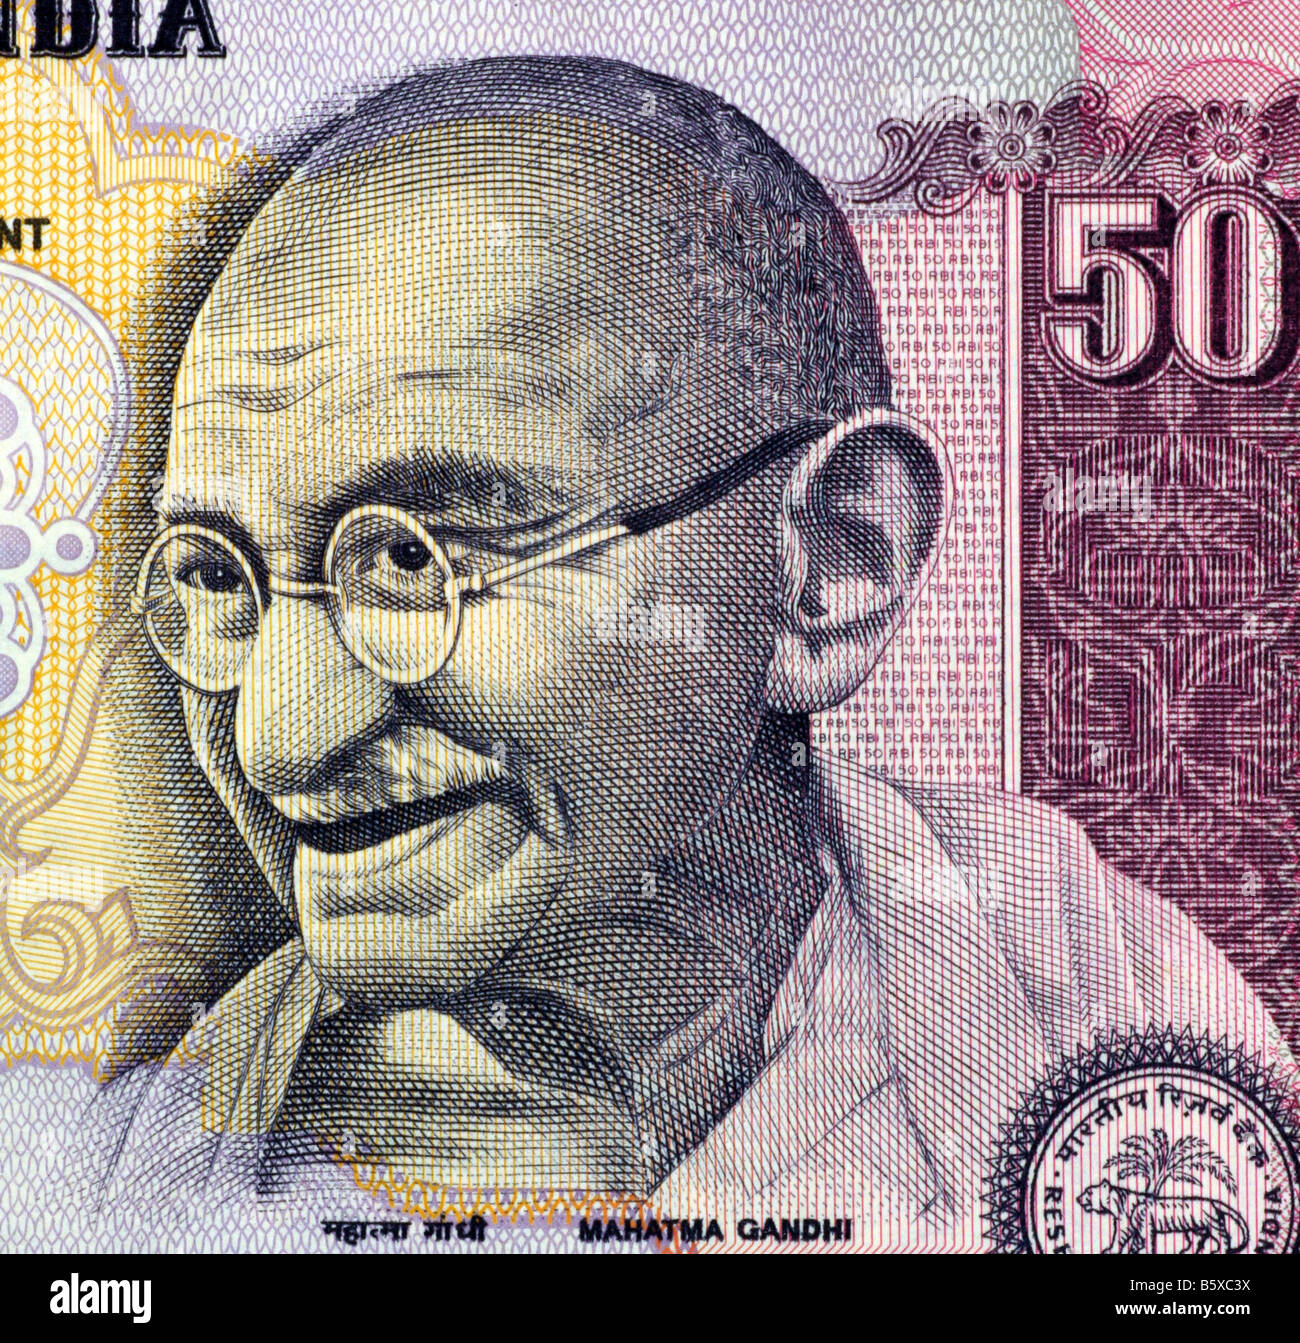 Gandhi on 50 rupees banknote from India - Stock Image